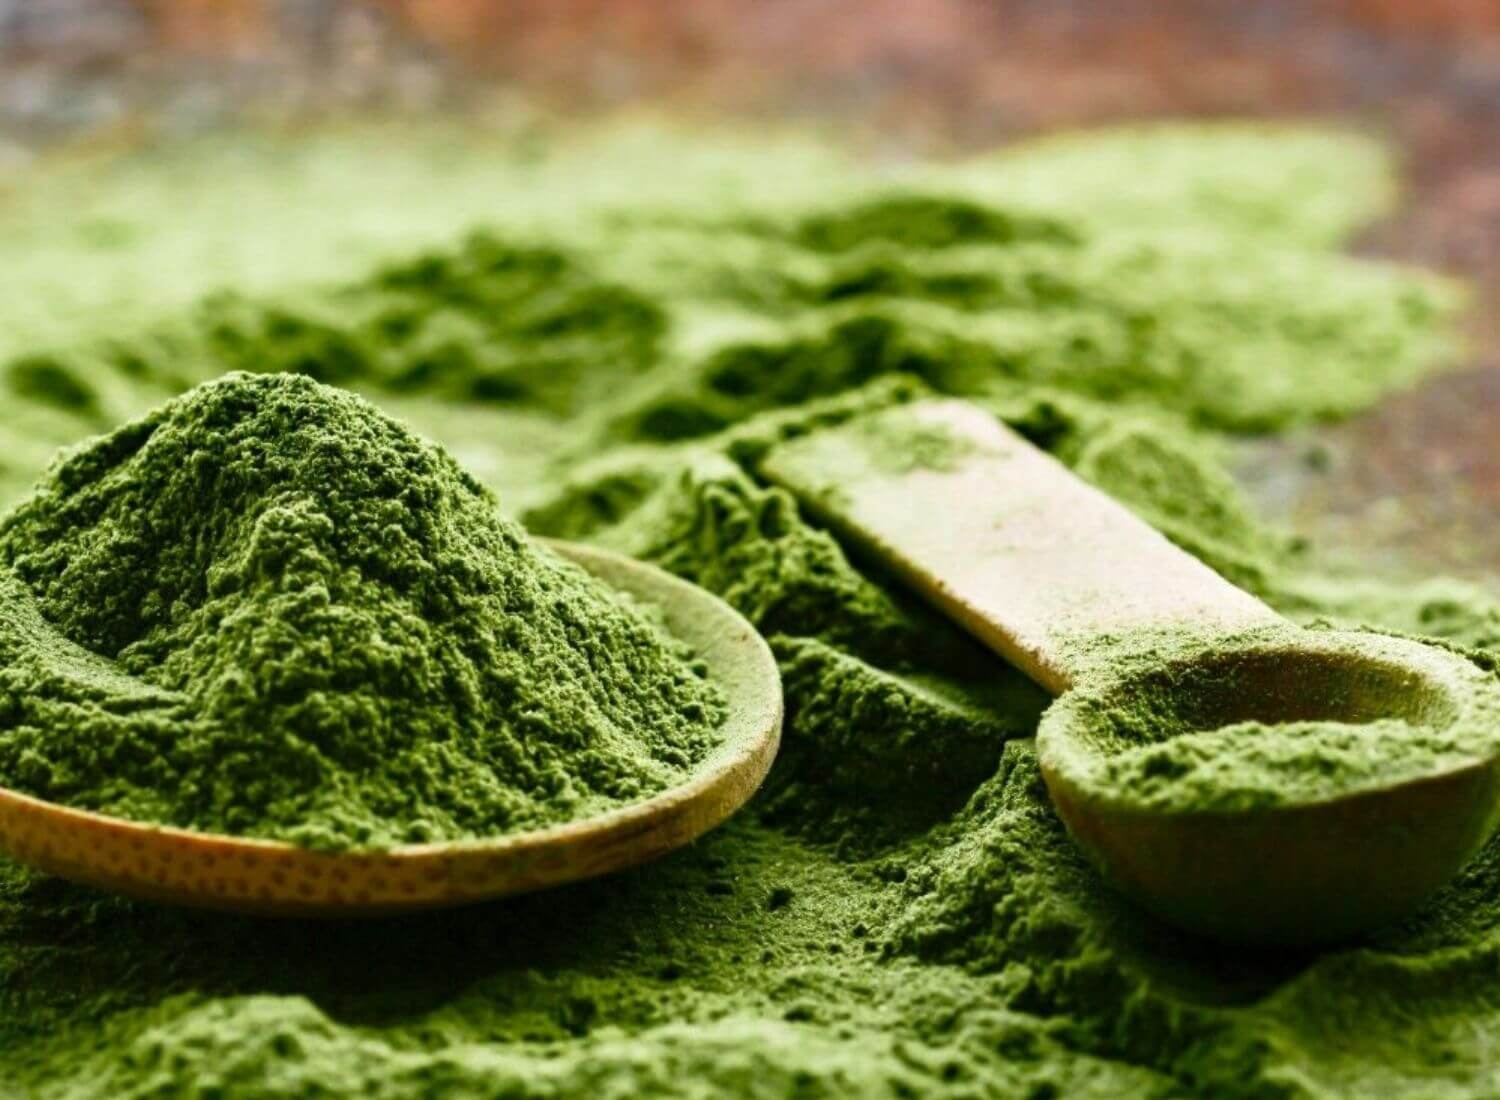 Green Borneo Kratom: Benefits And Recommended Intake